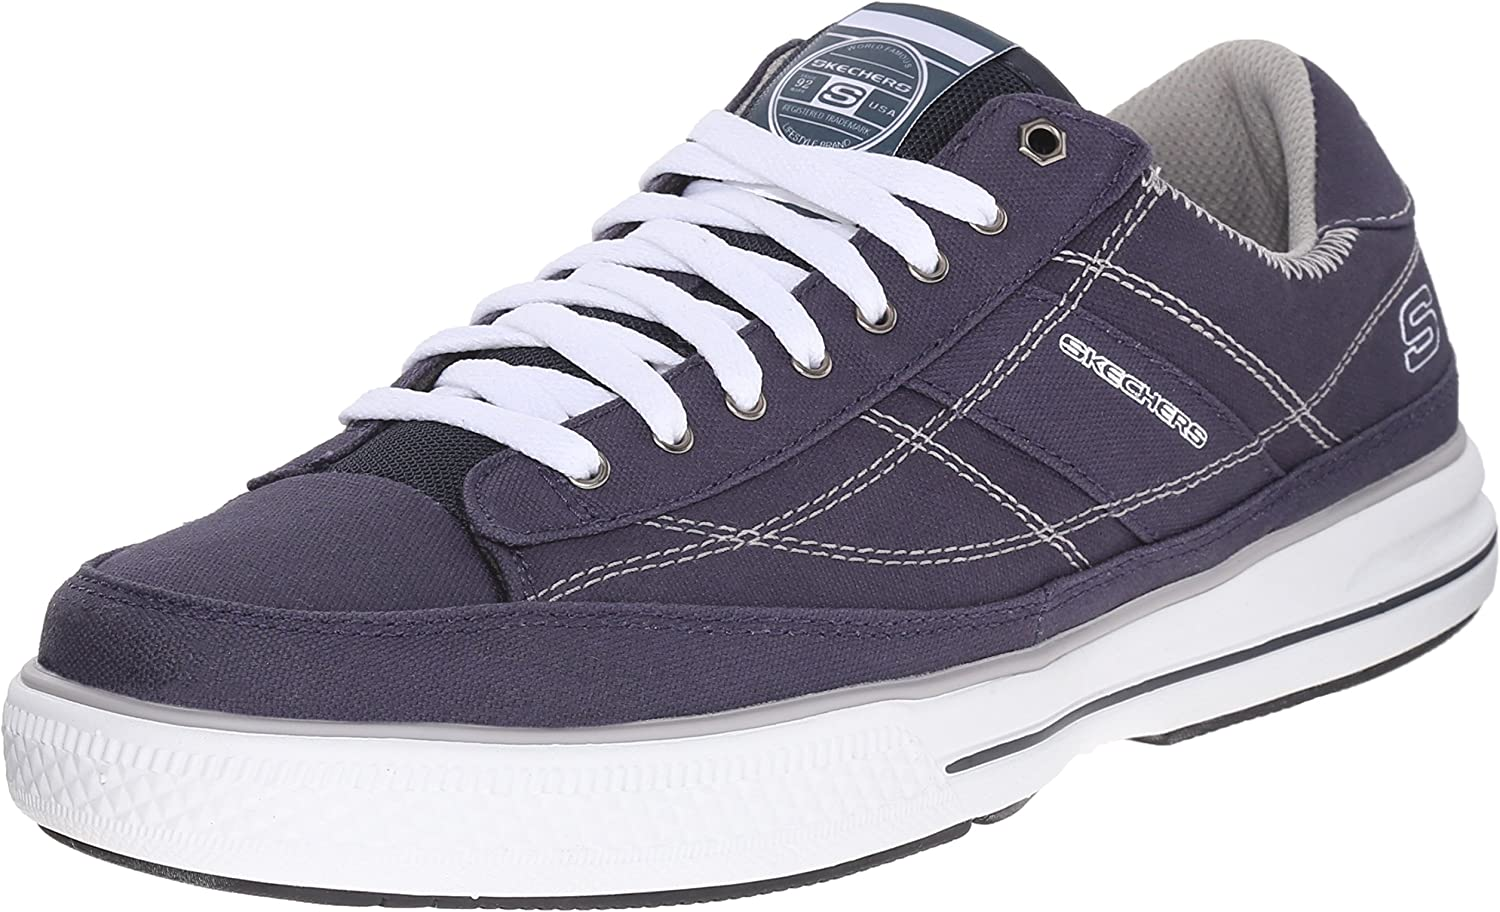 Skechers Herren Arcade Chat Mf 51014 Sneaker, weiß: Amazon ps174